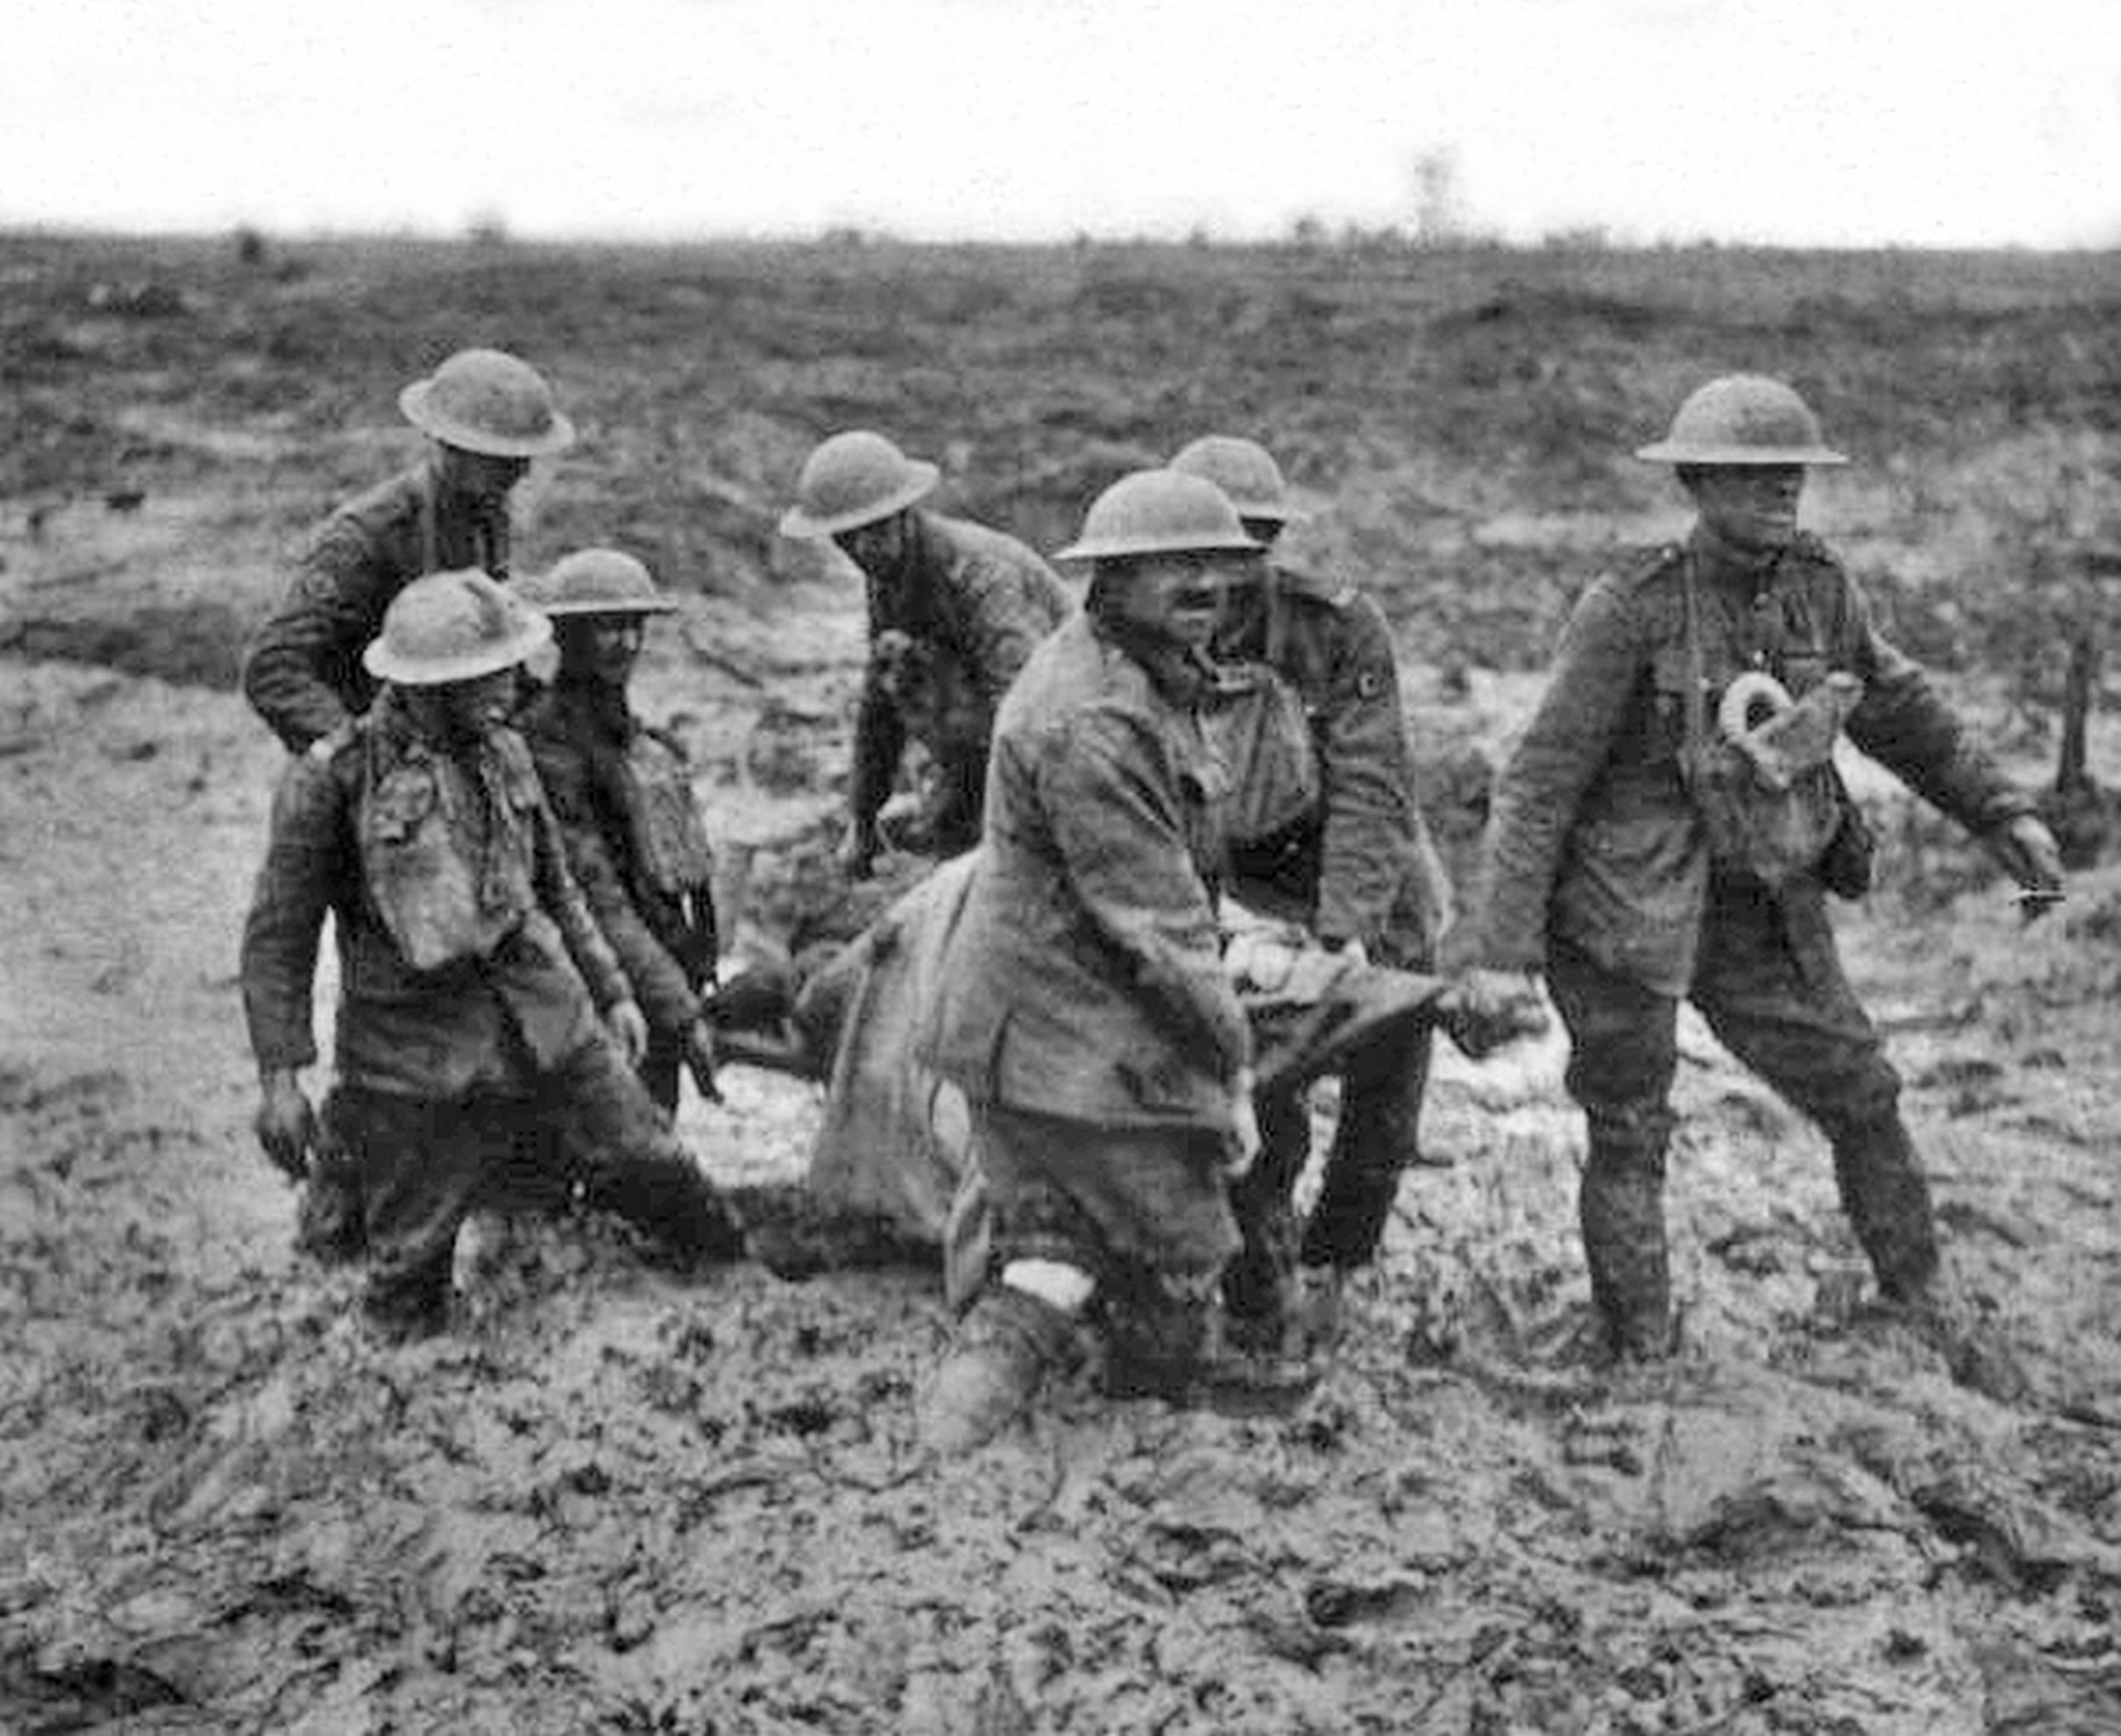 Stretcher bearers at Passchendaele, August 1917. (Photo by Universal History Archive/Getty Images)